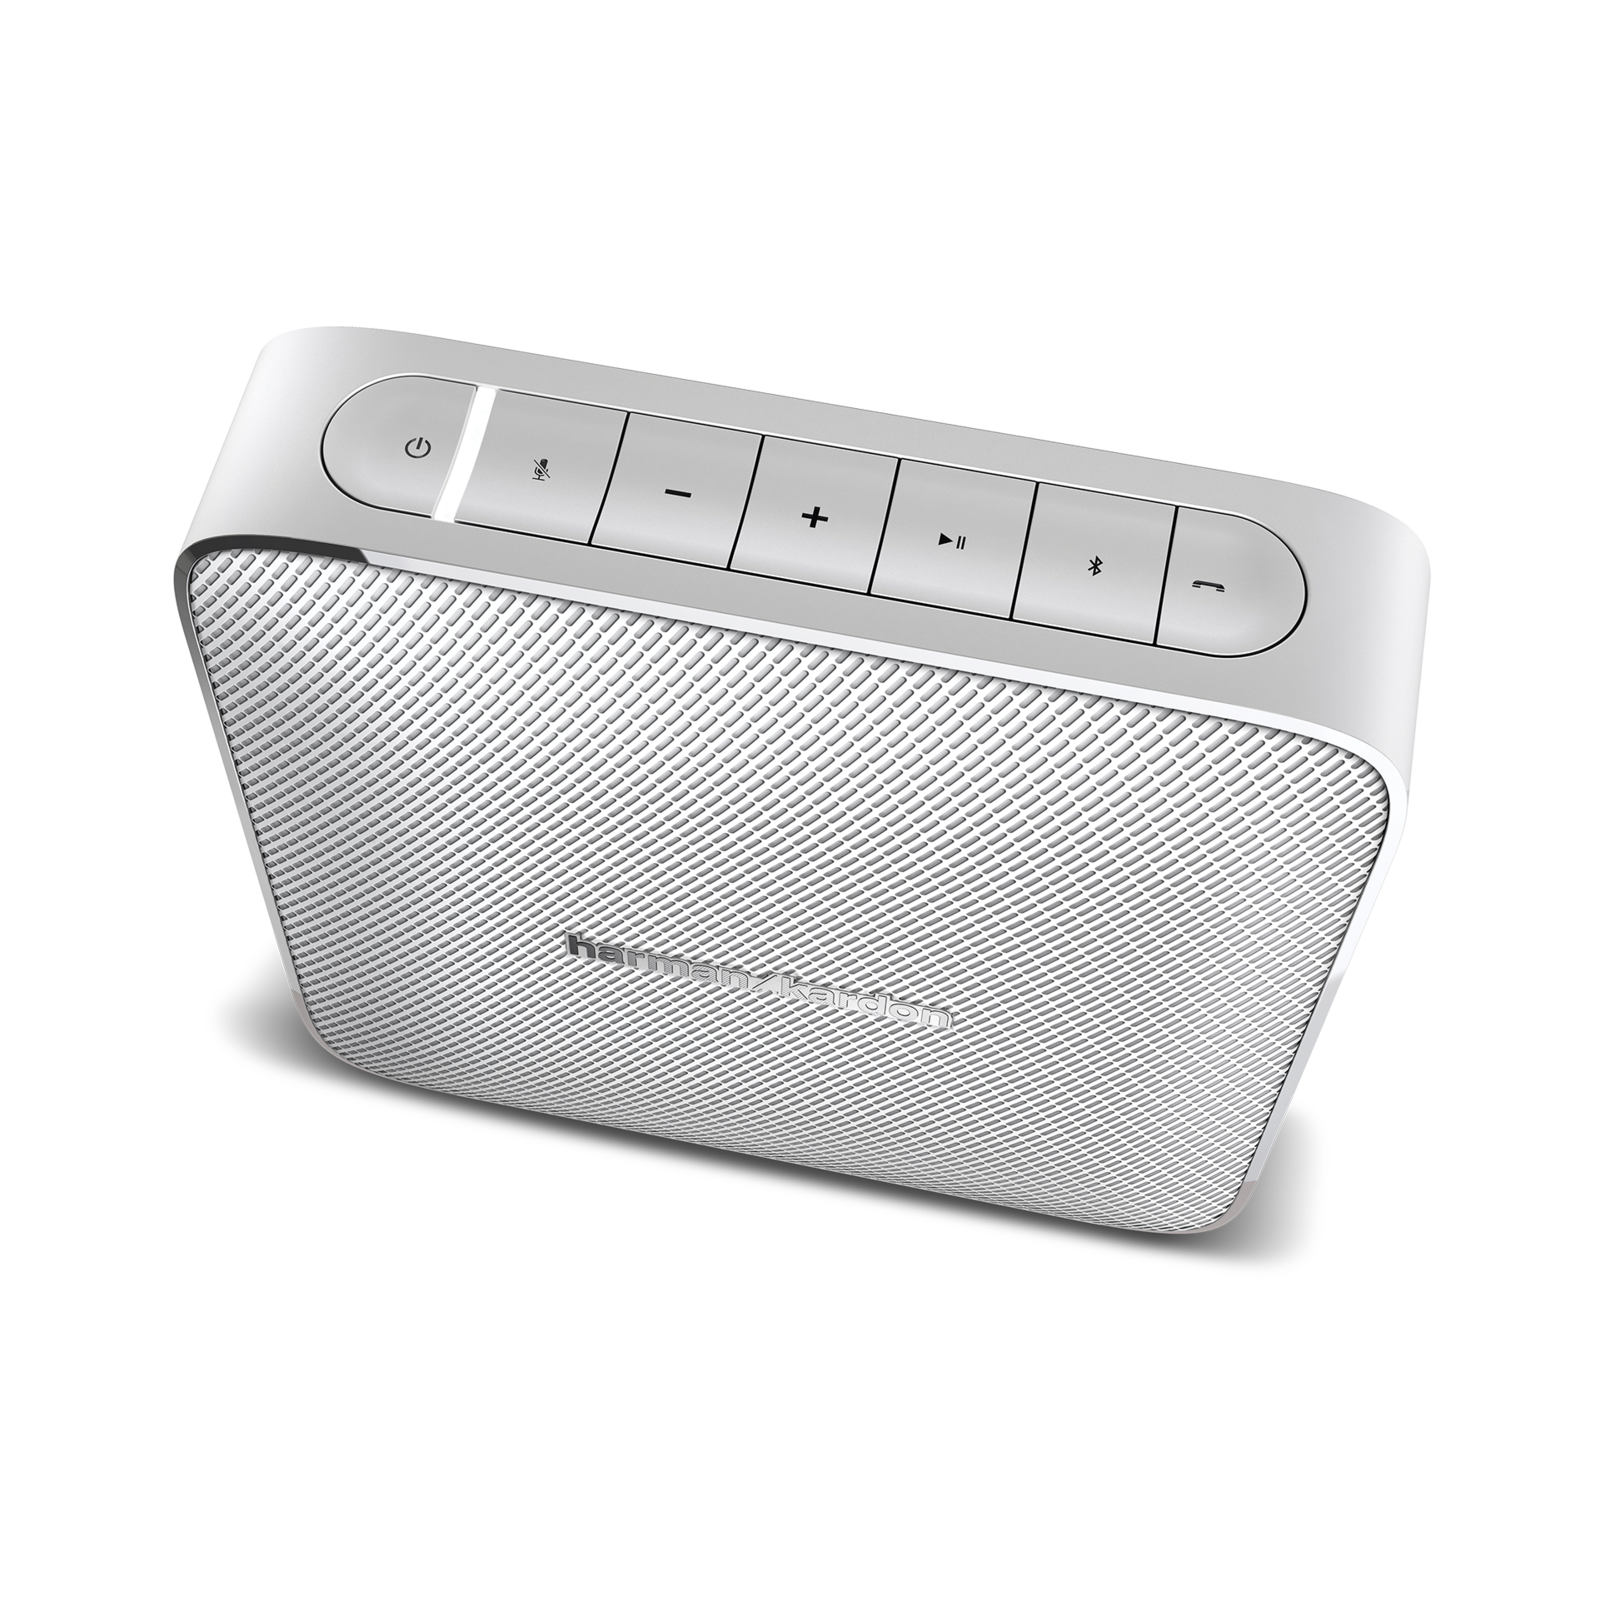 Esquire - White - Portable, wireless speaker and conferencing system - Detailshot 1